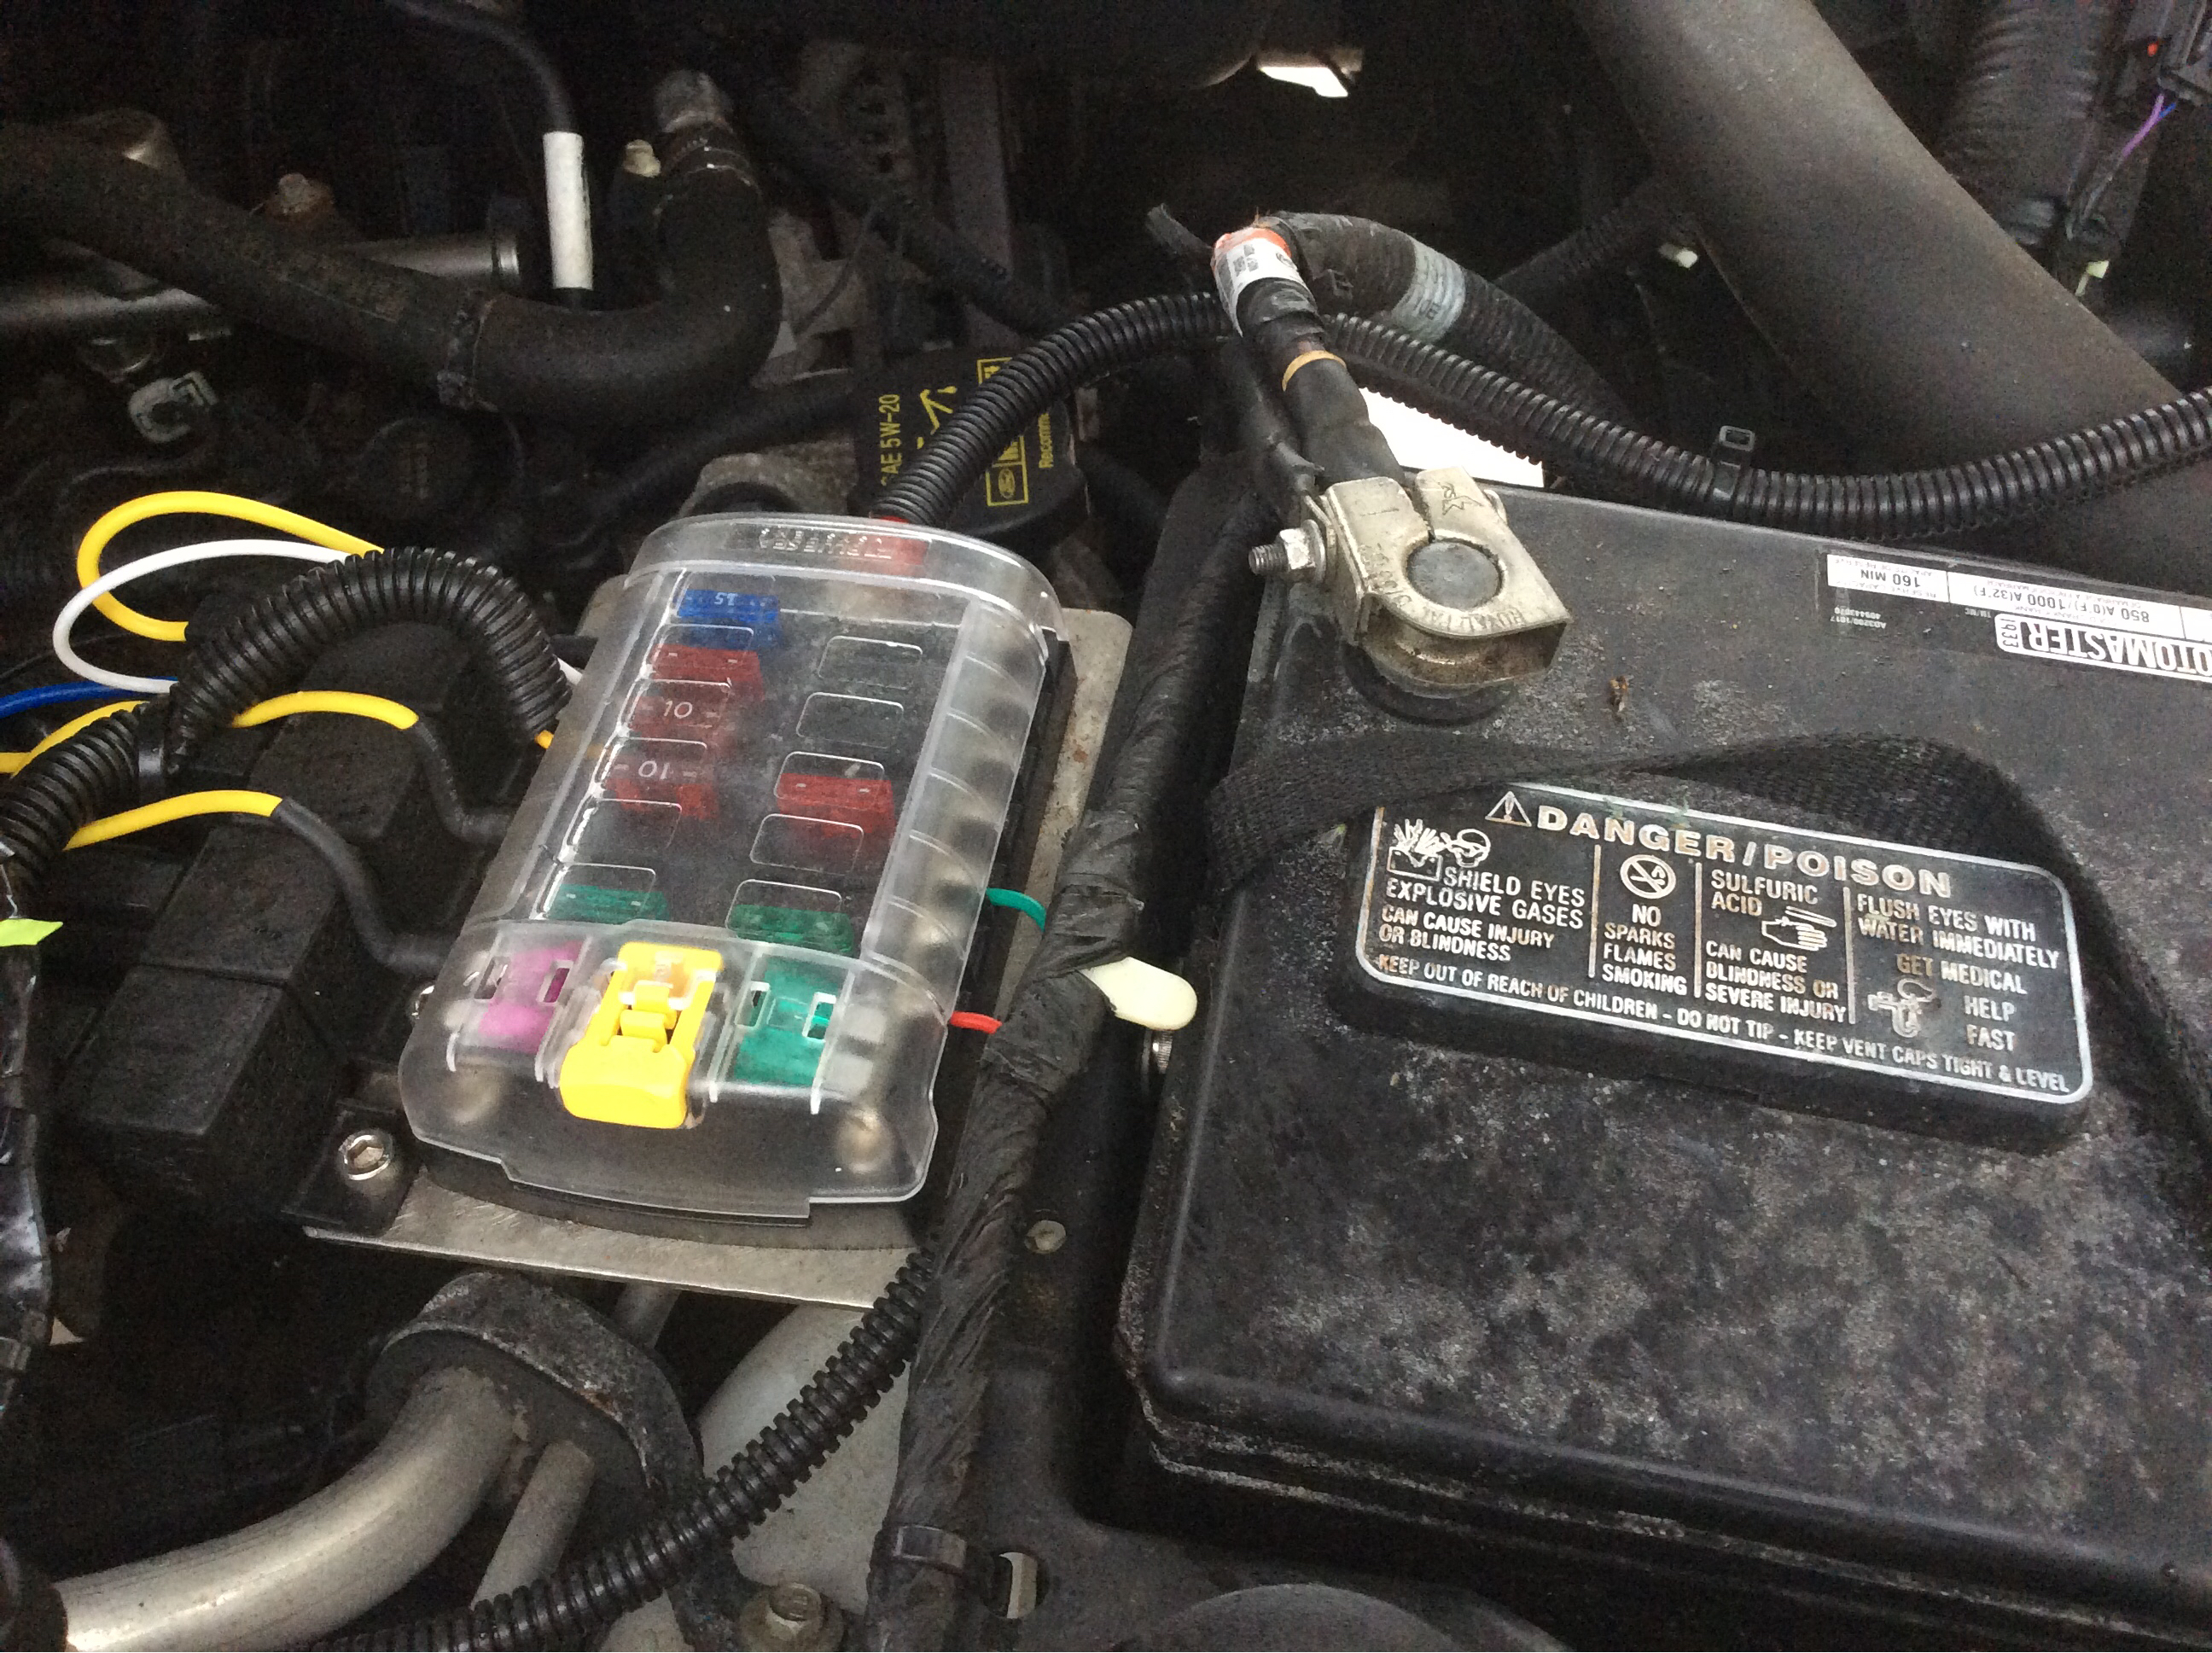 2015 F250 Super Duty Upfitter Wiring Diagram Aux Upfitter Switches And More Ford F150 Forum